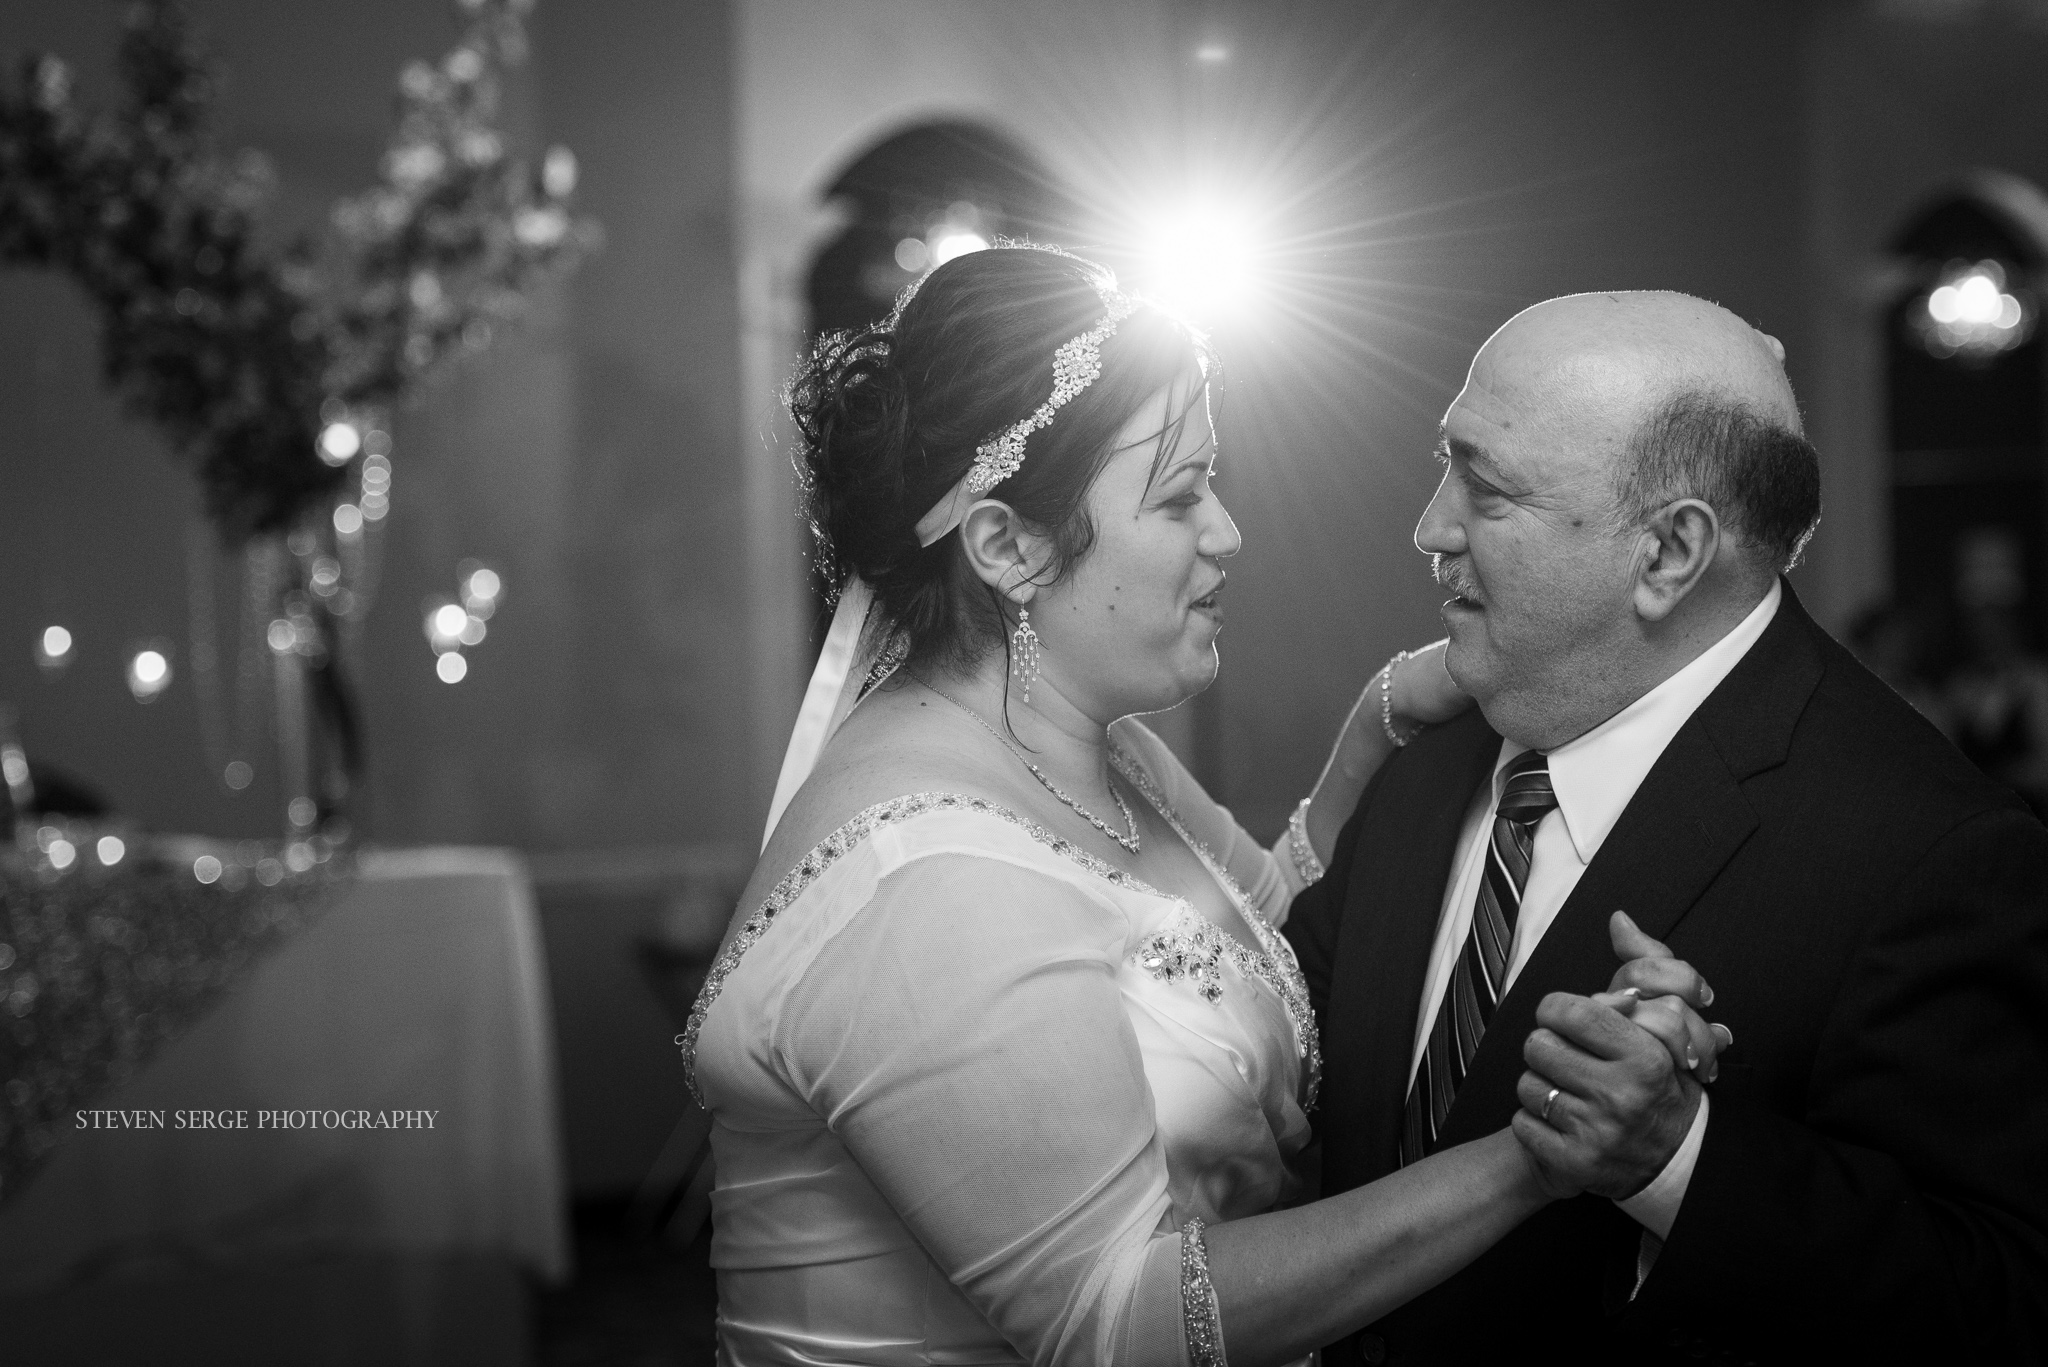 Scranton-wedding-photographer-fiorellis-steven-serge-65.jpg